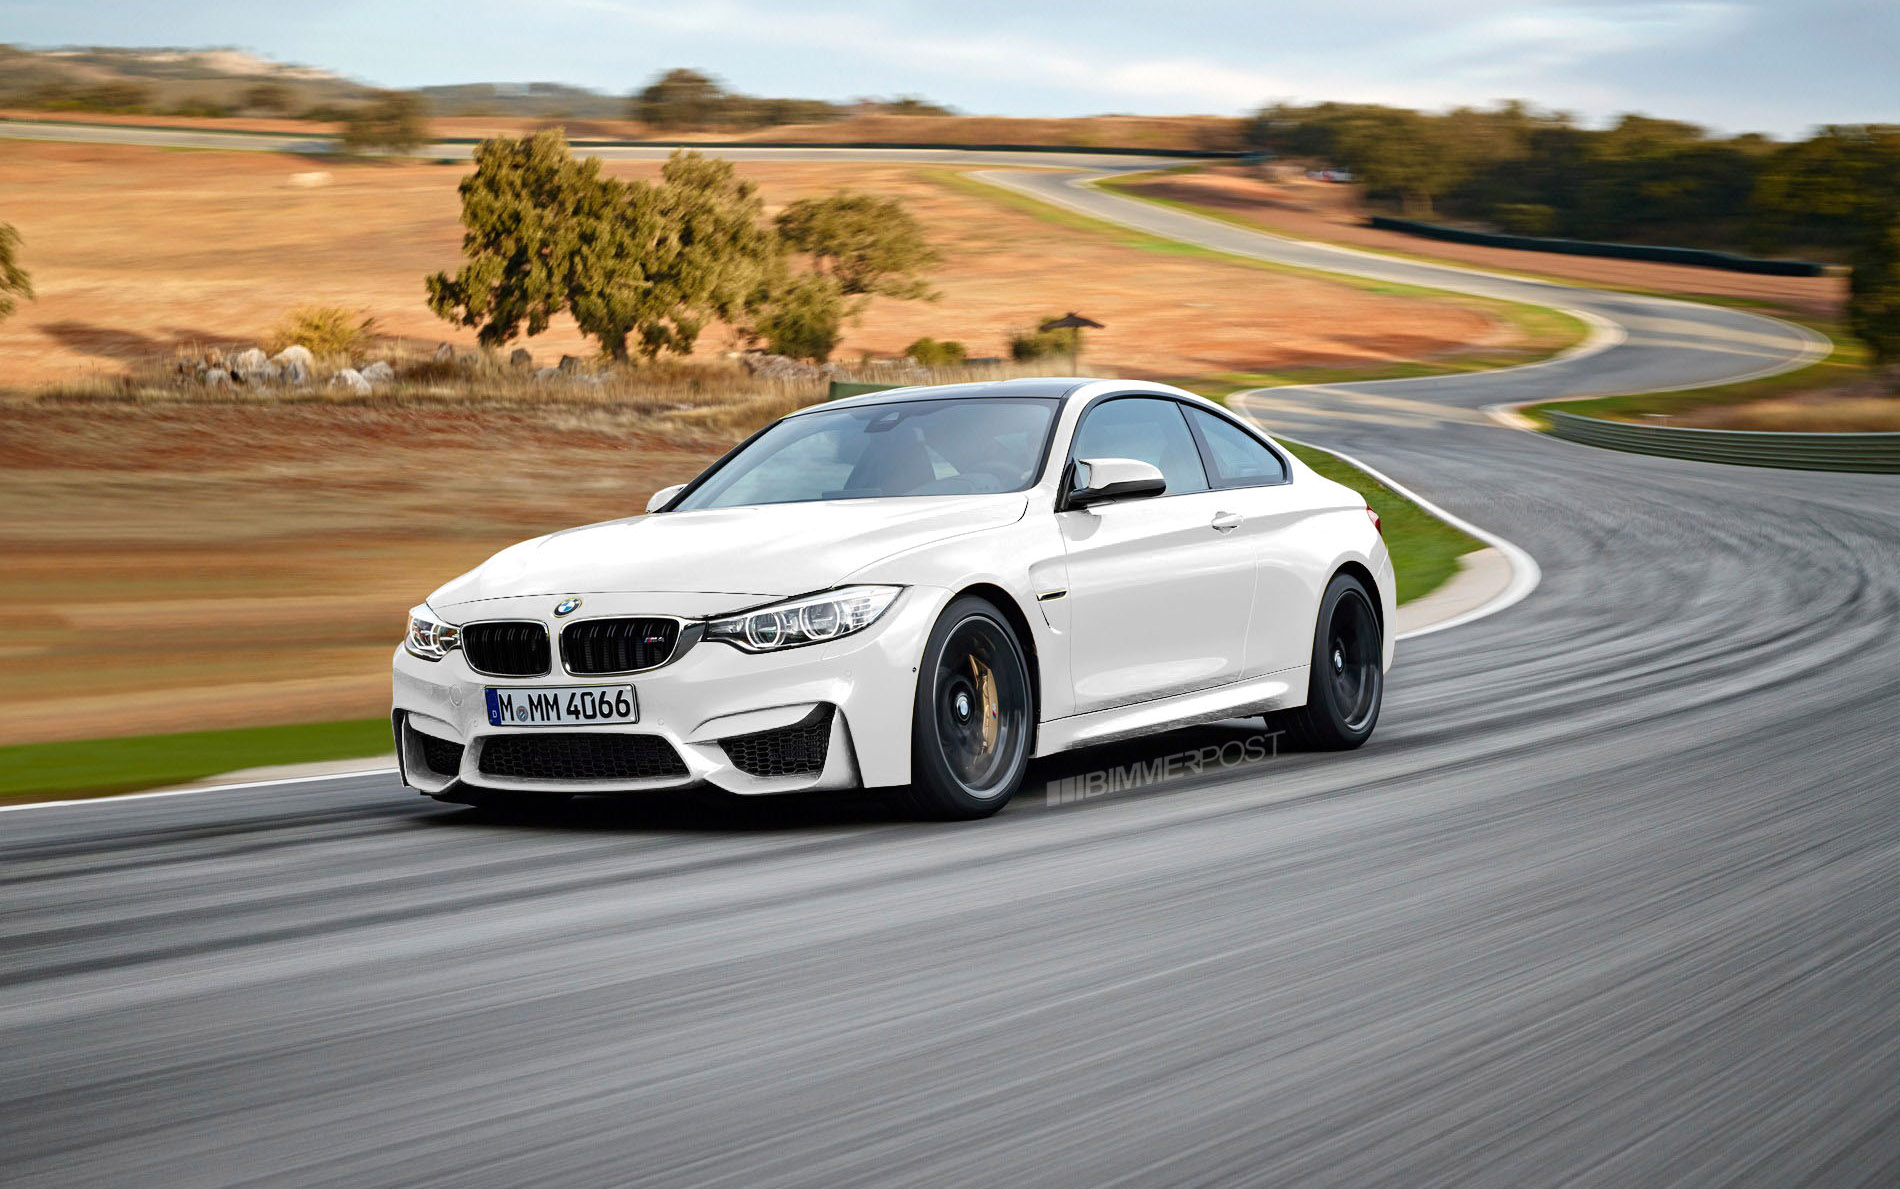 Rendered Bmw M3 M4 In Other Colors